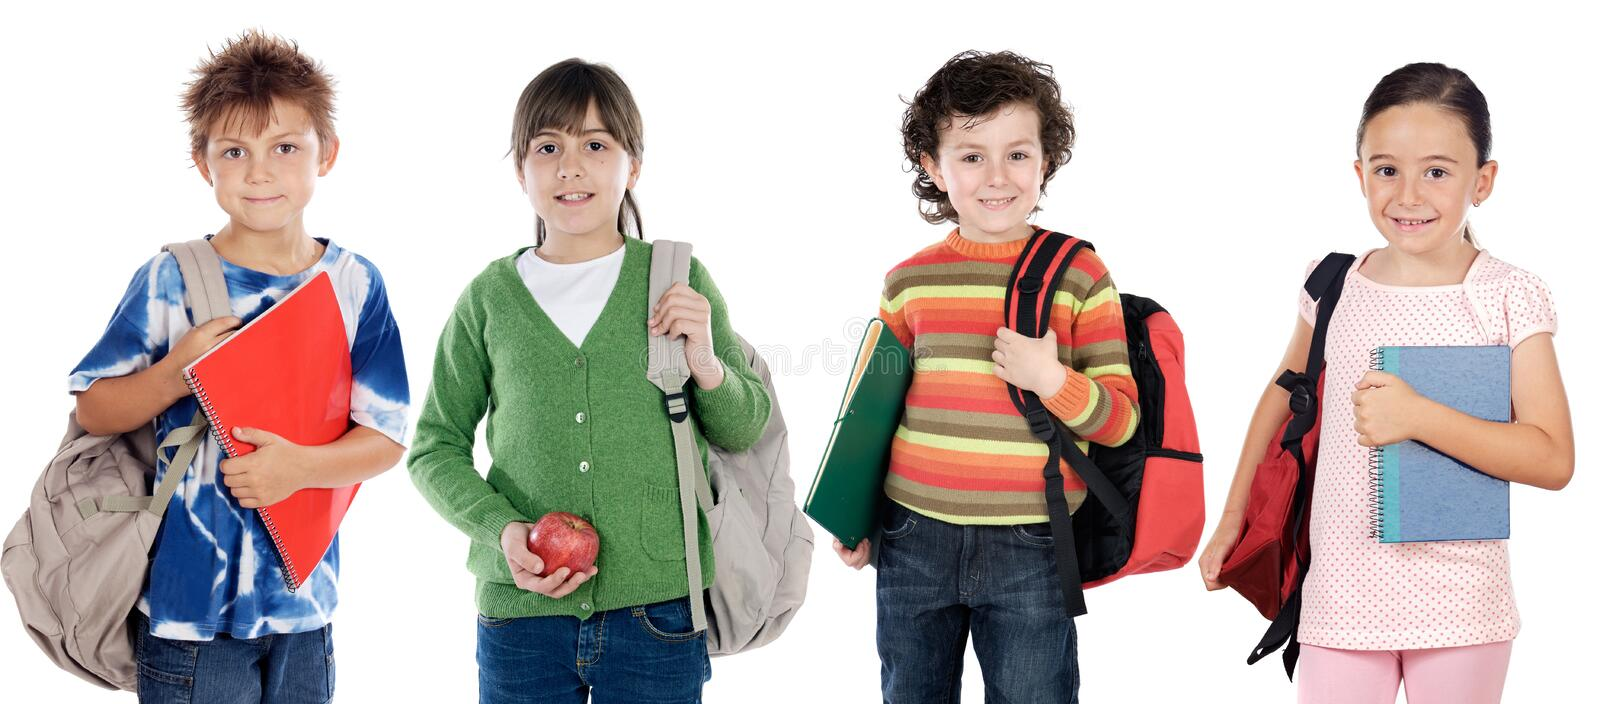 Group Of Children Students Royalty Free Stock Images